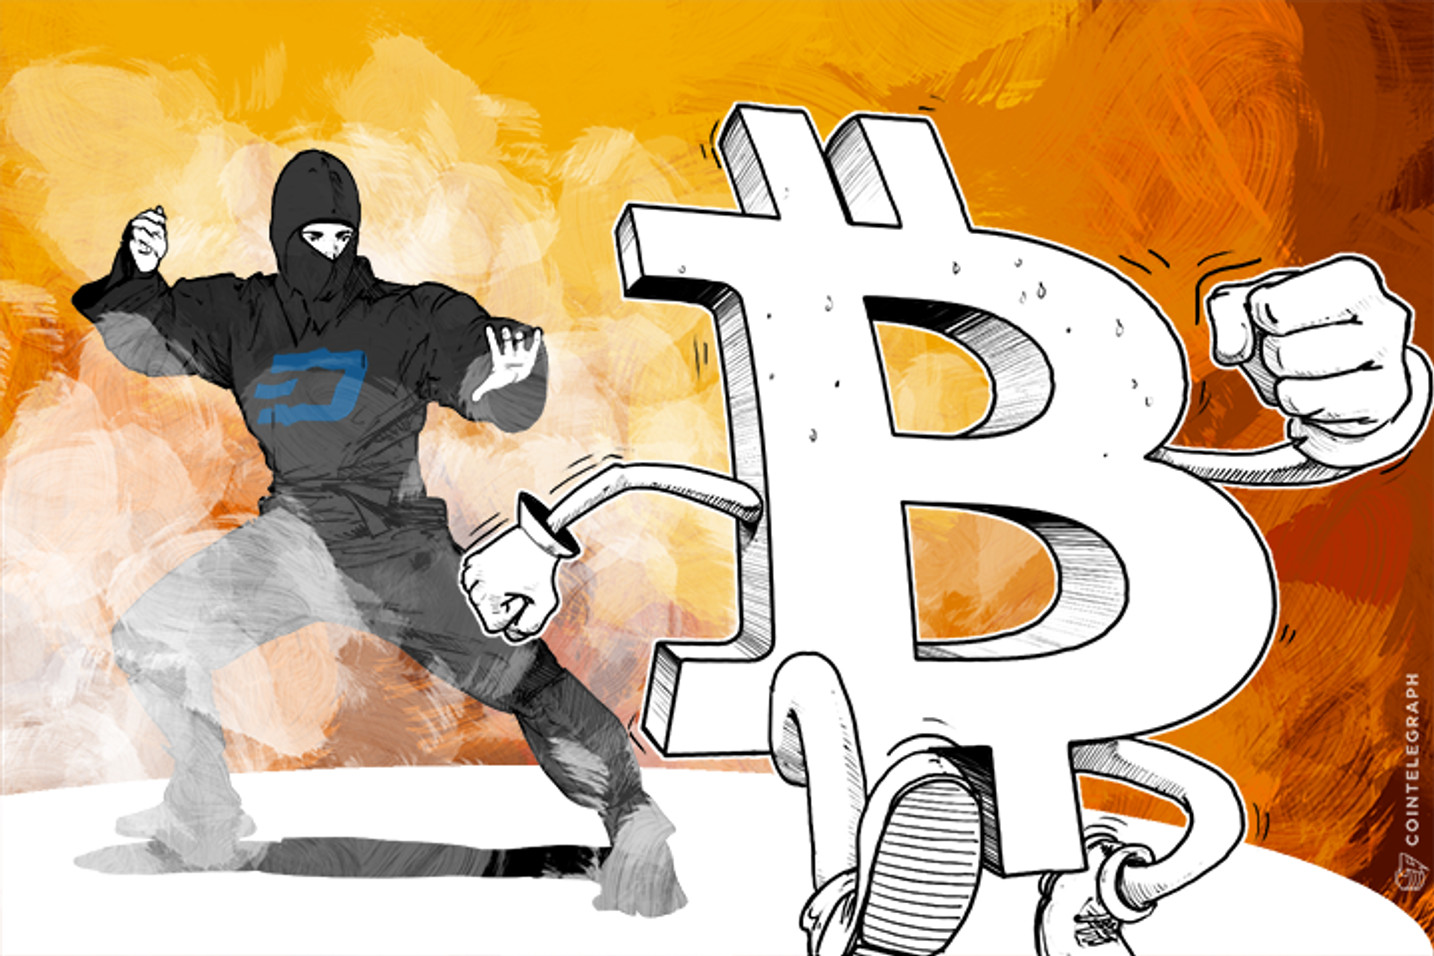 Bitcoin Violates the Principle of Fungibility (Op-Ed)